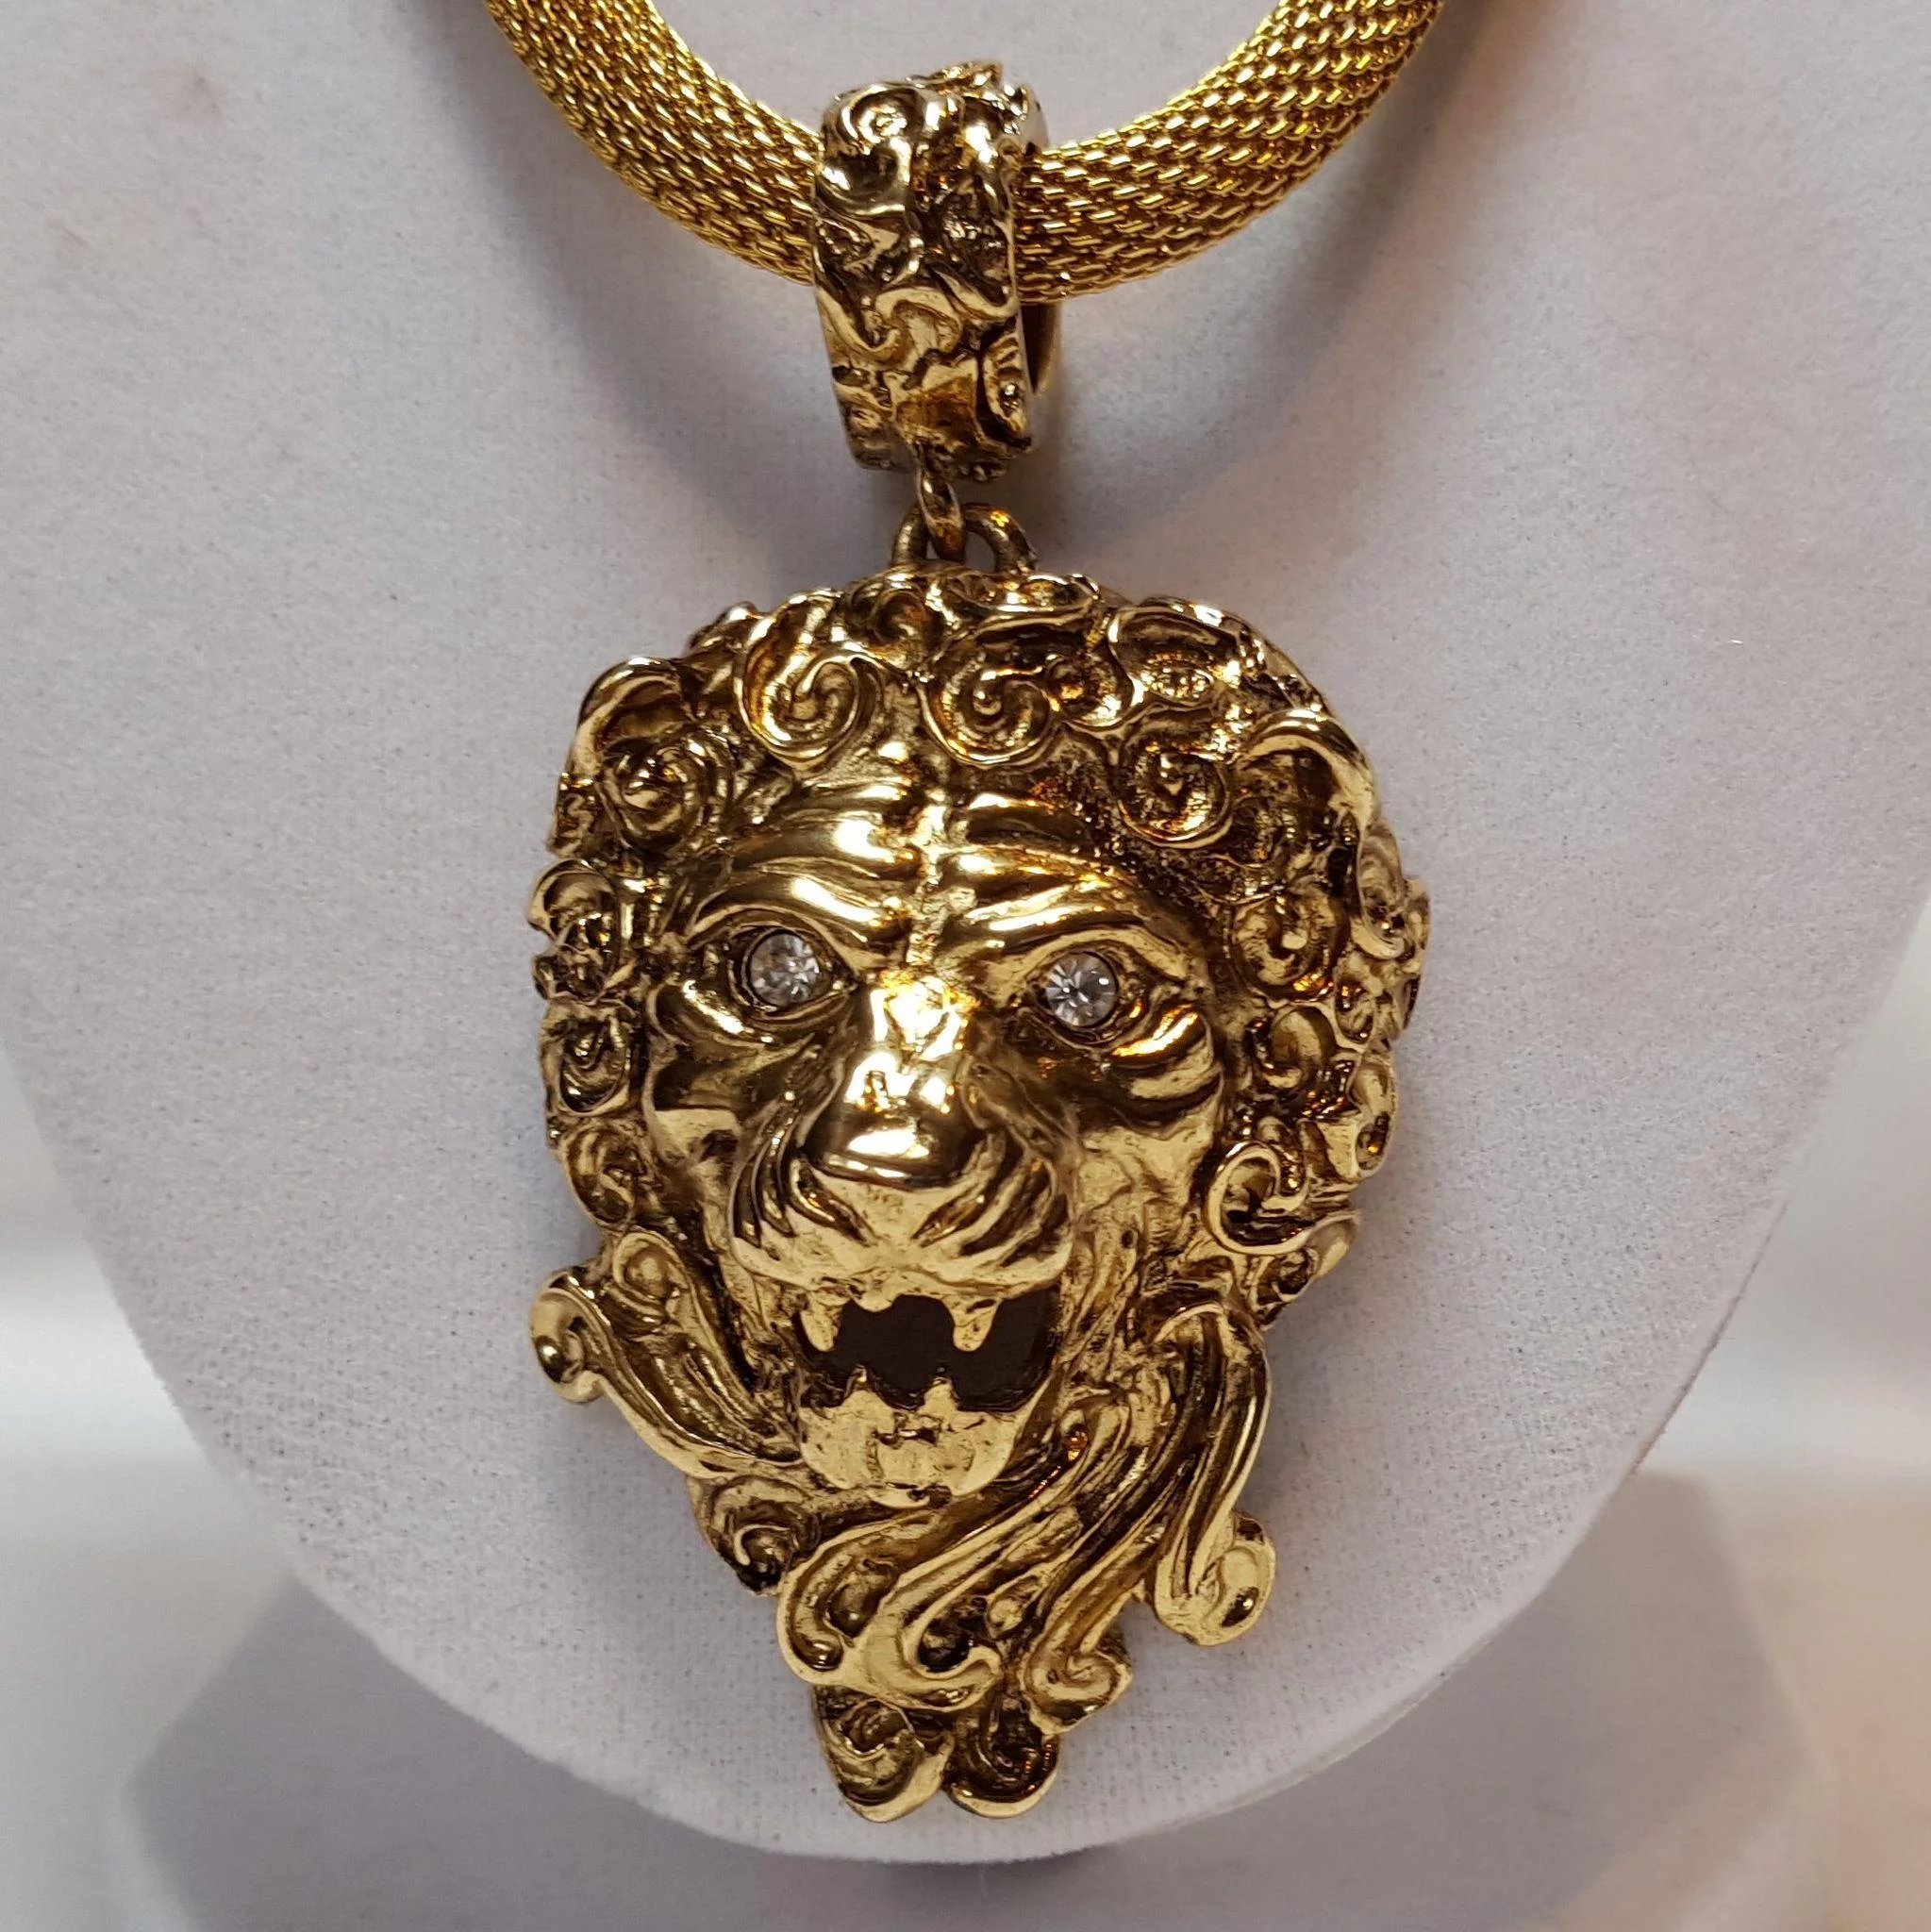 printable print cgtrader max obj stl model models cebf fbx pendants lion jewelry pendant